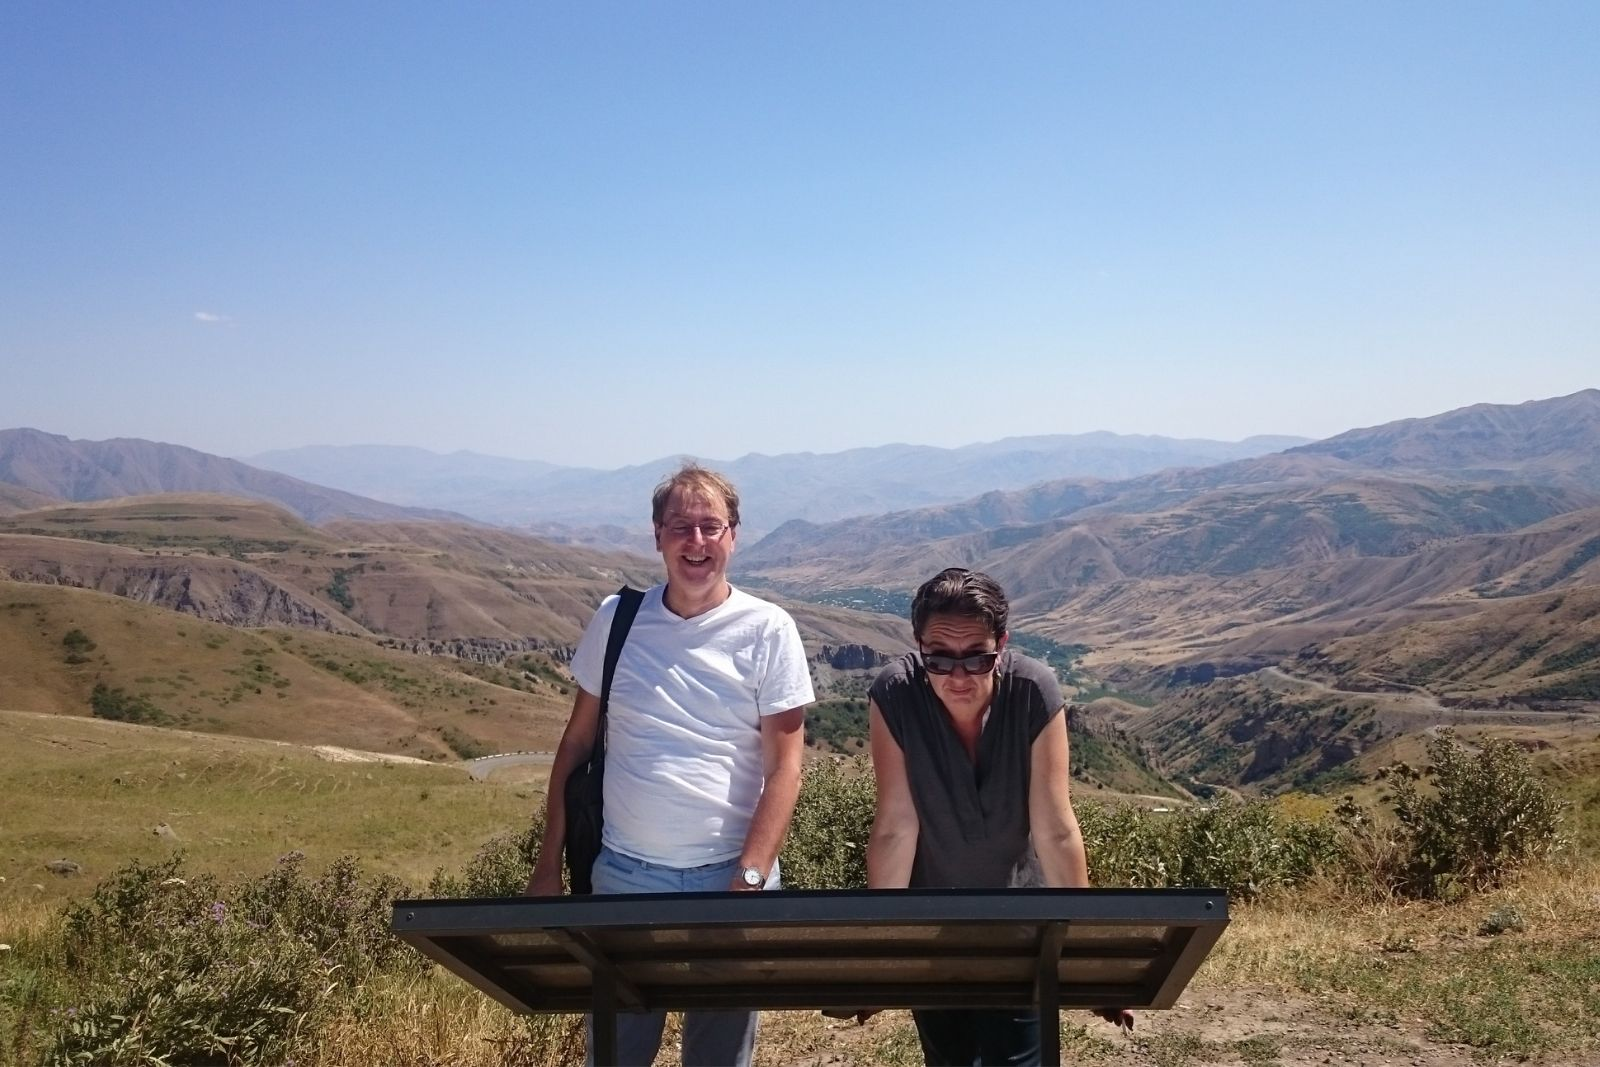 Armenian language summer school participants Rene Bekius and Yana Tchekhanovets at the Tsaghkunyats Mountain pass just next to Orbelian's Caravanserai